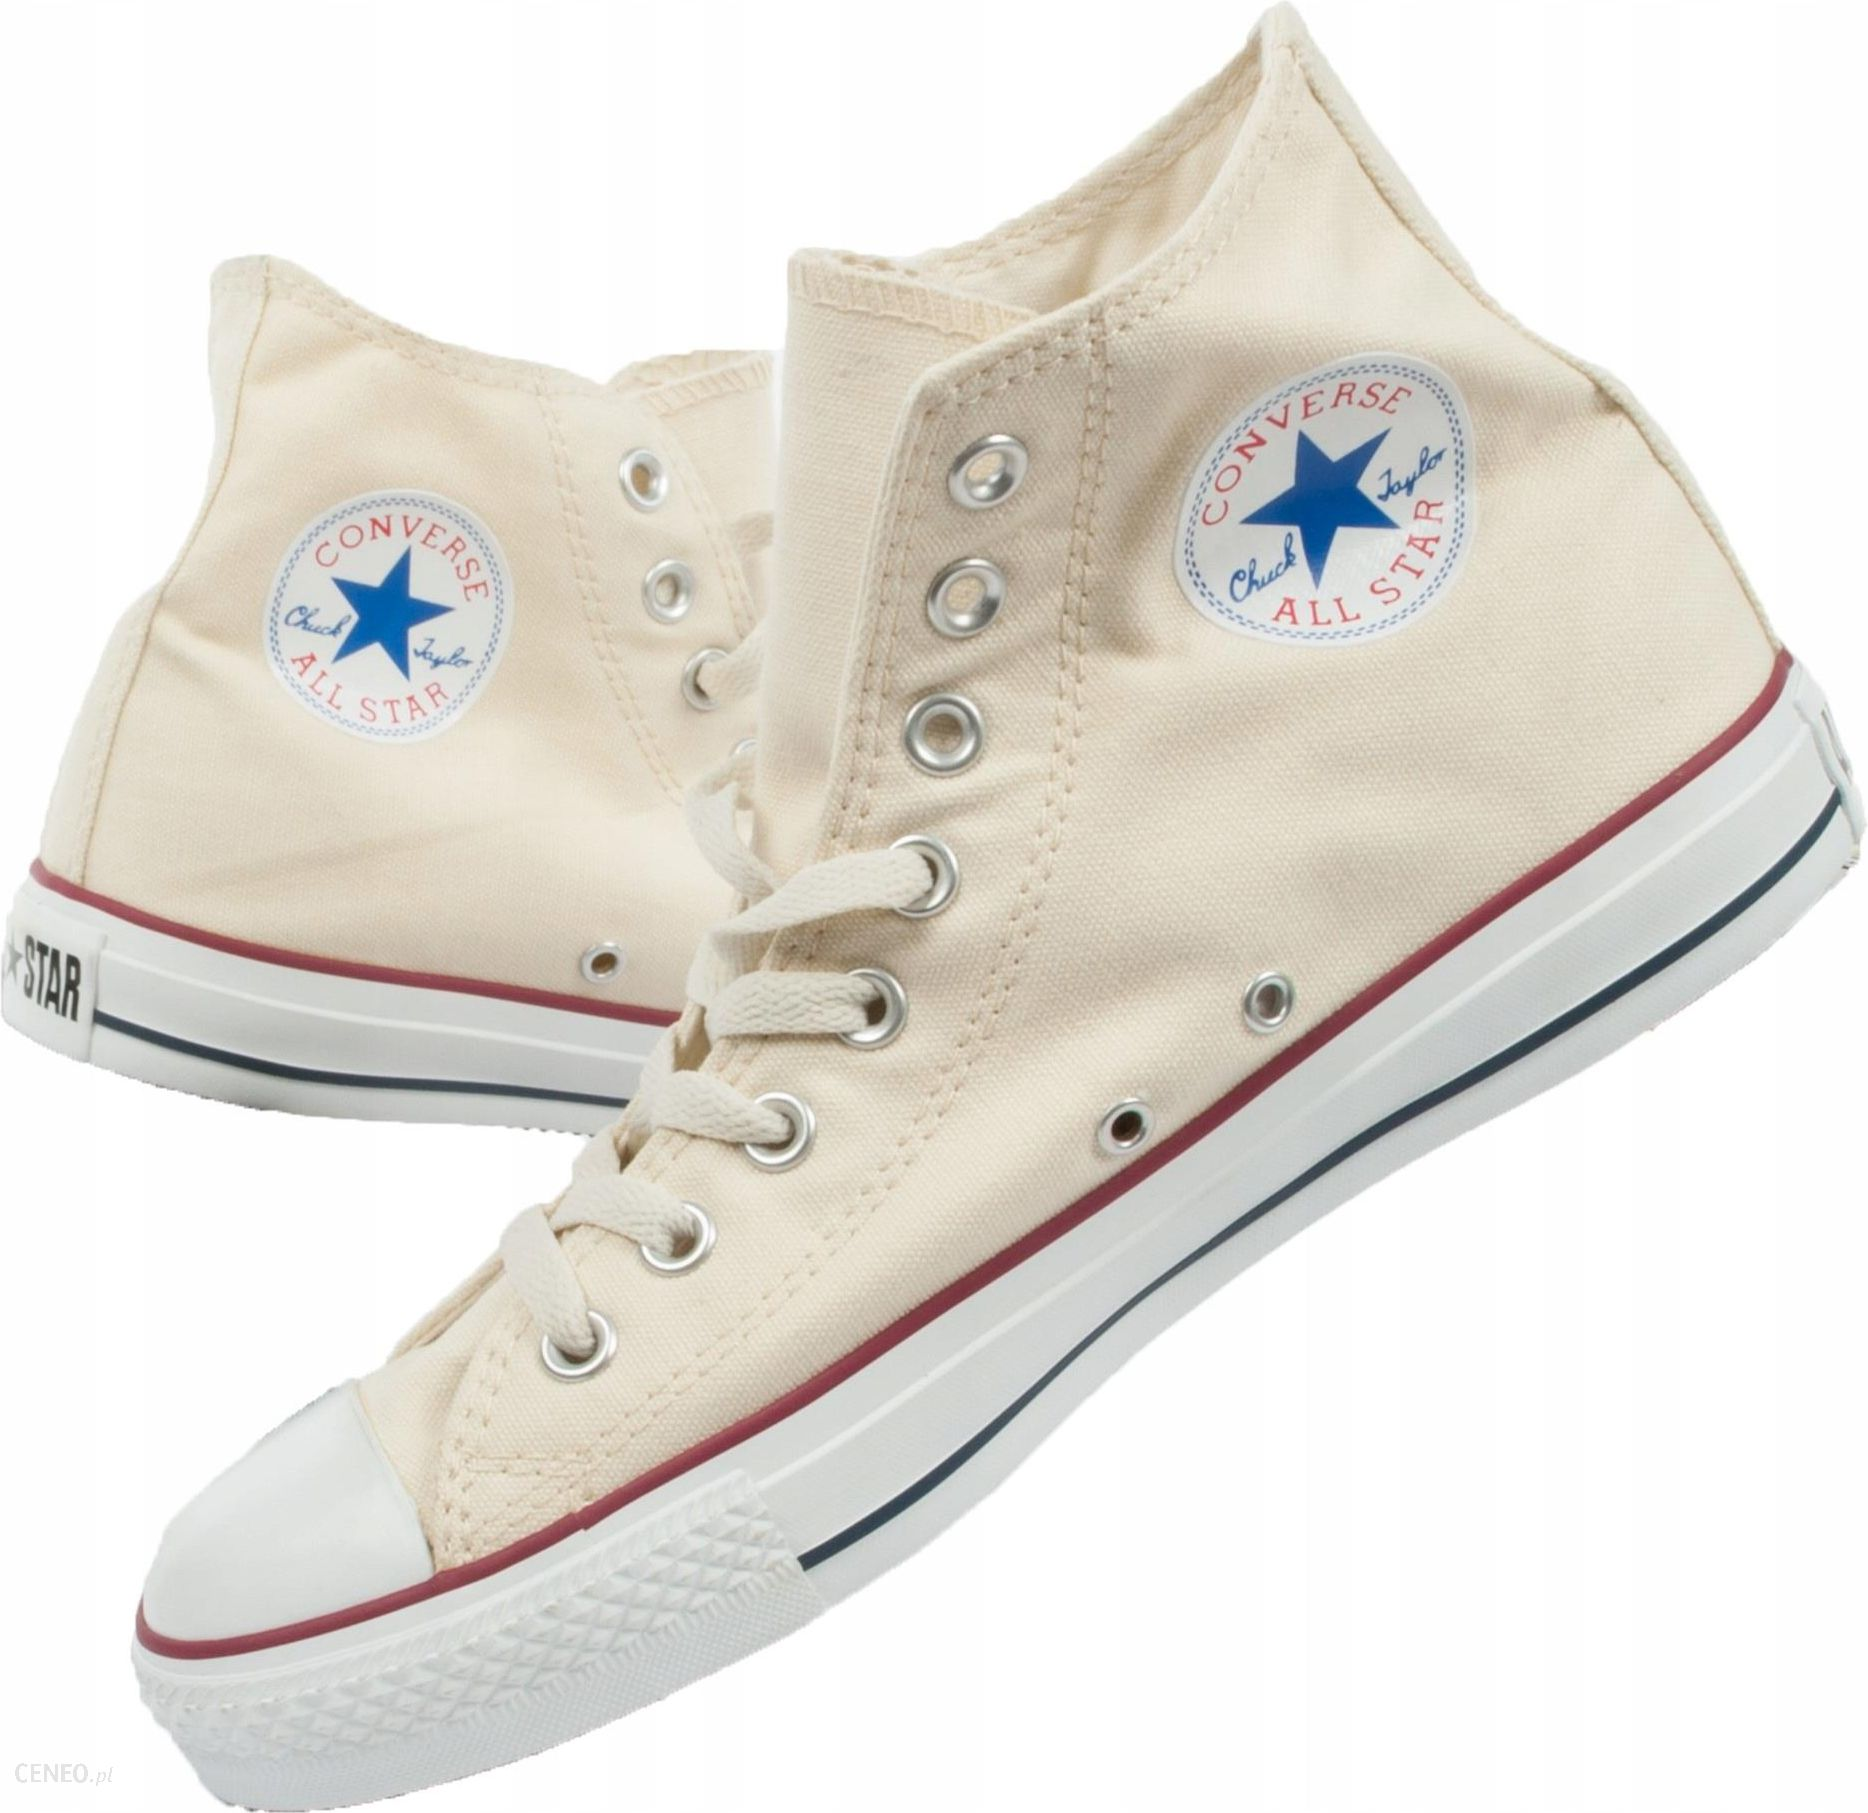 Trampki Converse Chuck Taylor All Star M9162 r.36 Ceny i opinie Ceneo.pl